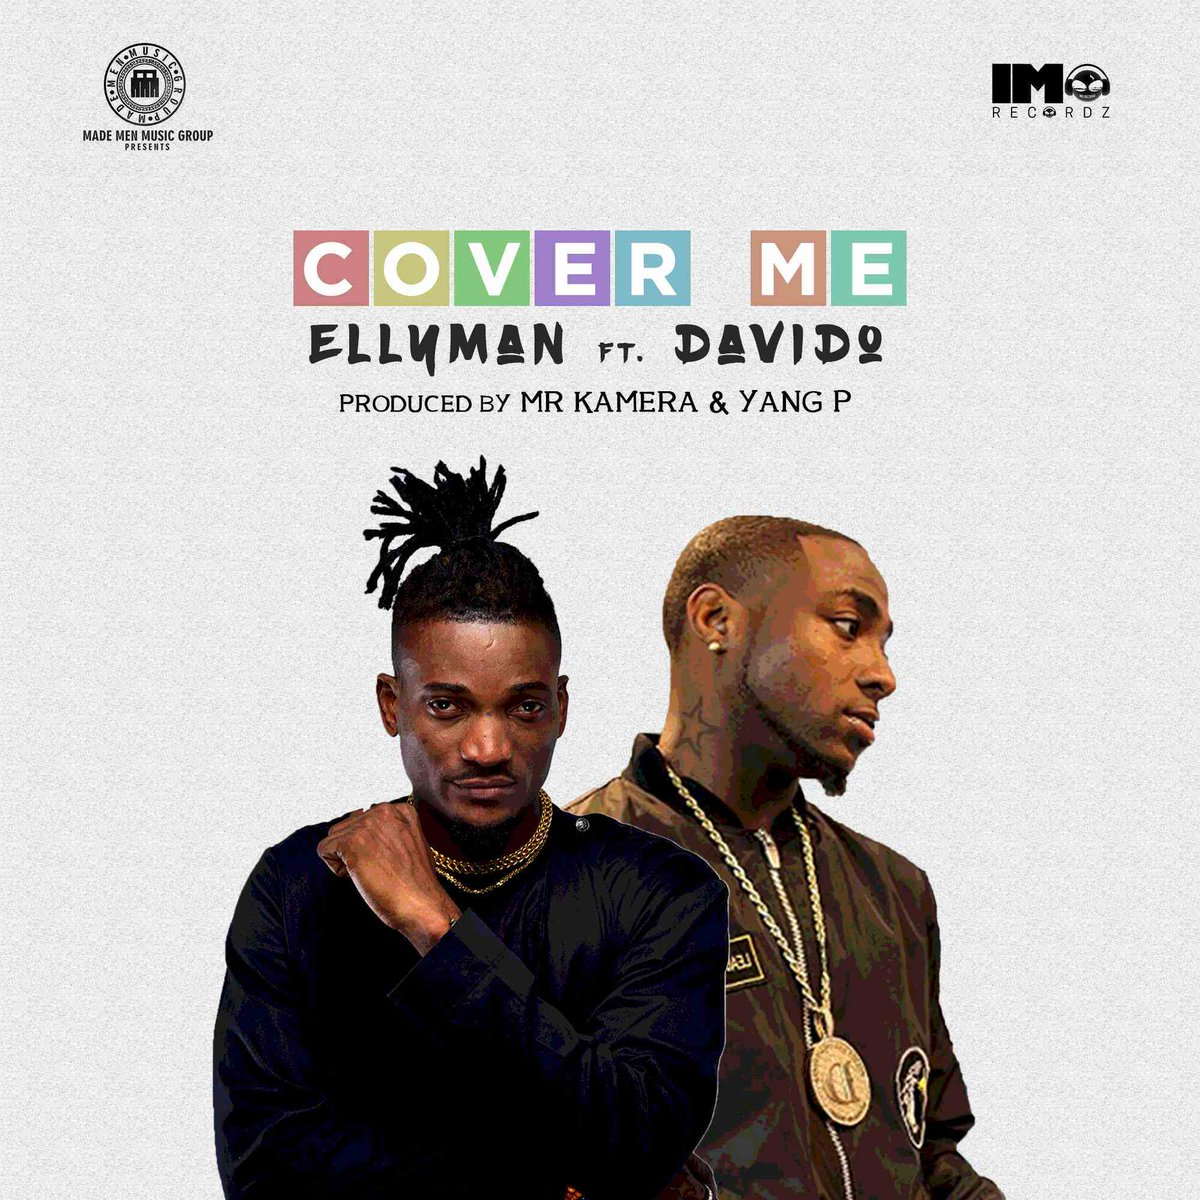 RT @CoolFMAbuja: #Np Cover me @officialellyman ft. @iam_Davido  #SaturdayNightShow with @UsoroEdima #PartyClubMix https://t.co/XWIkv8Zj6y